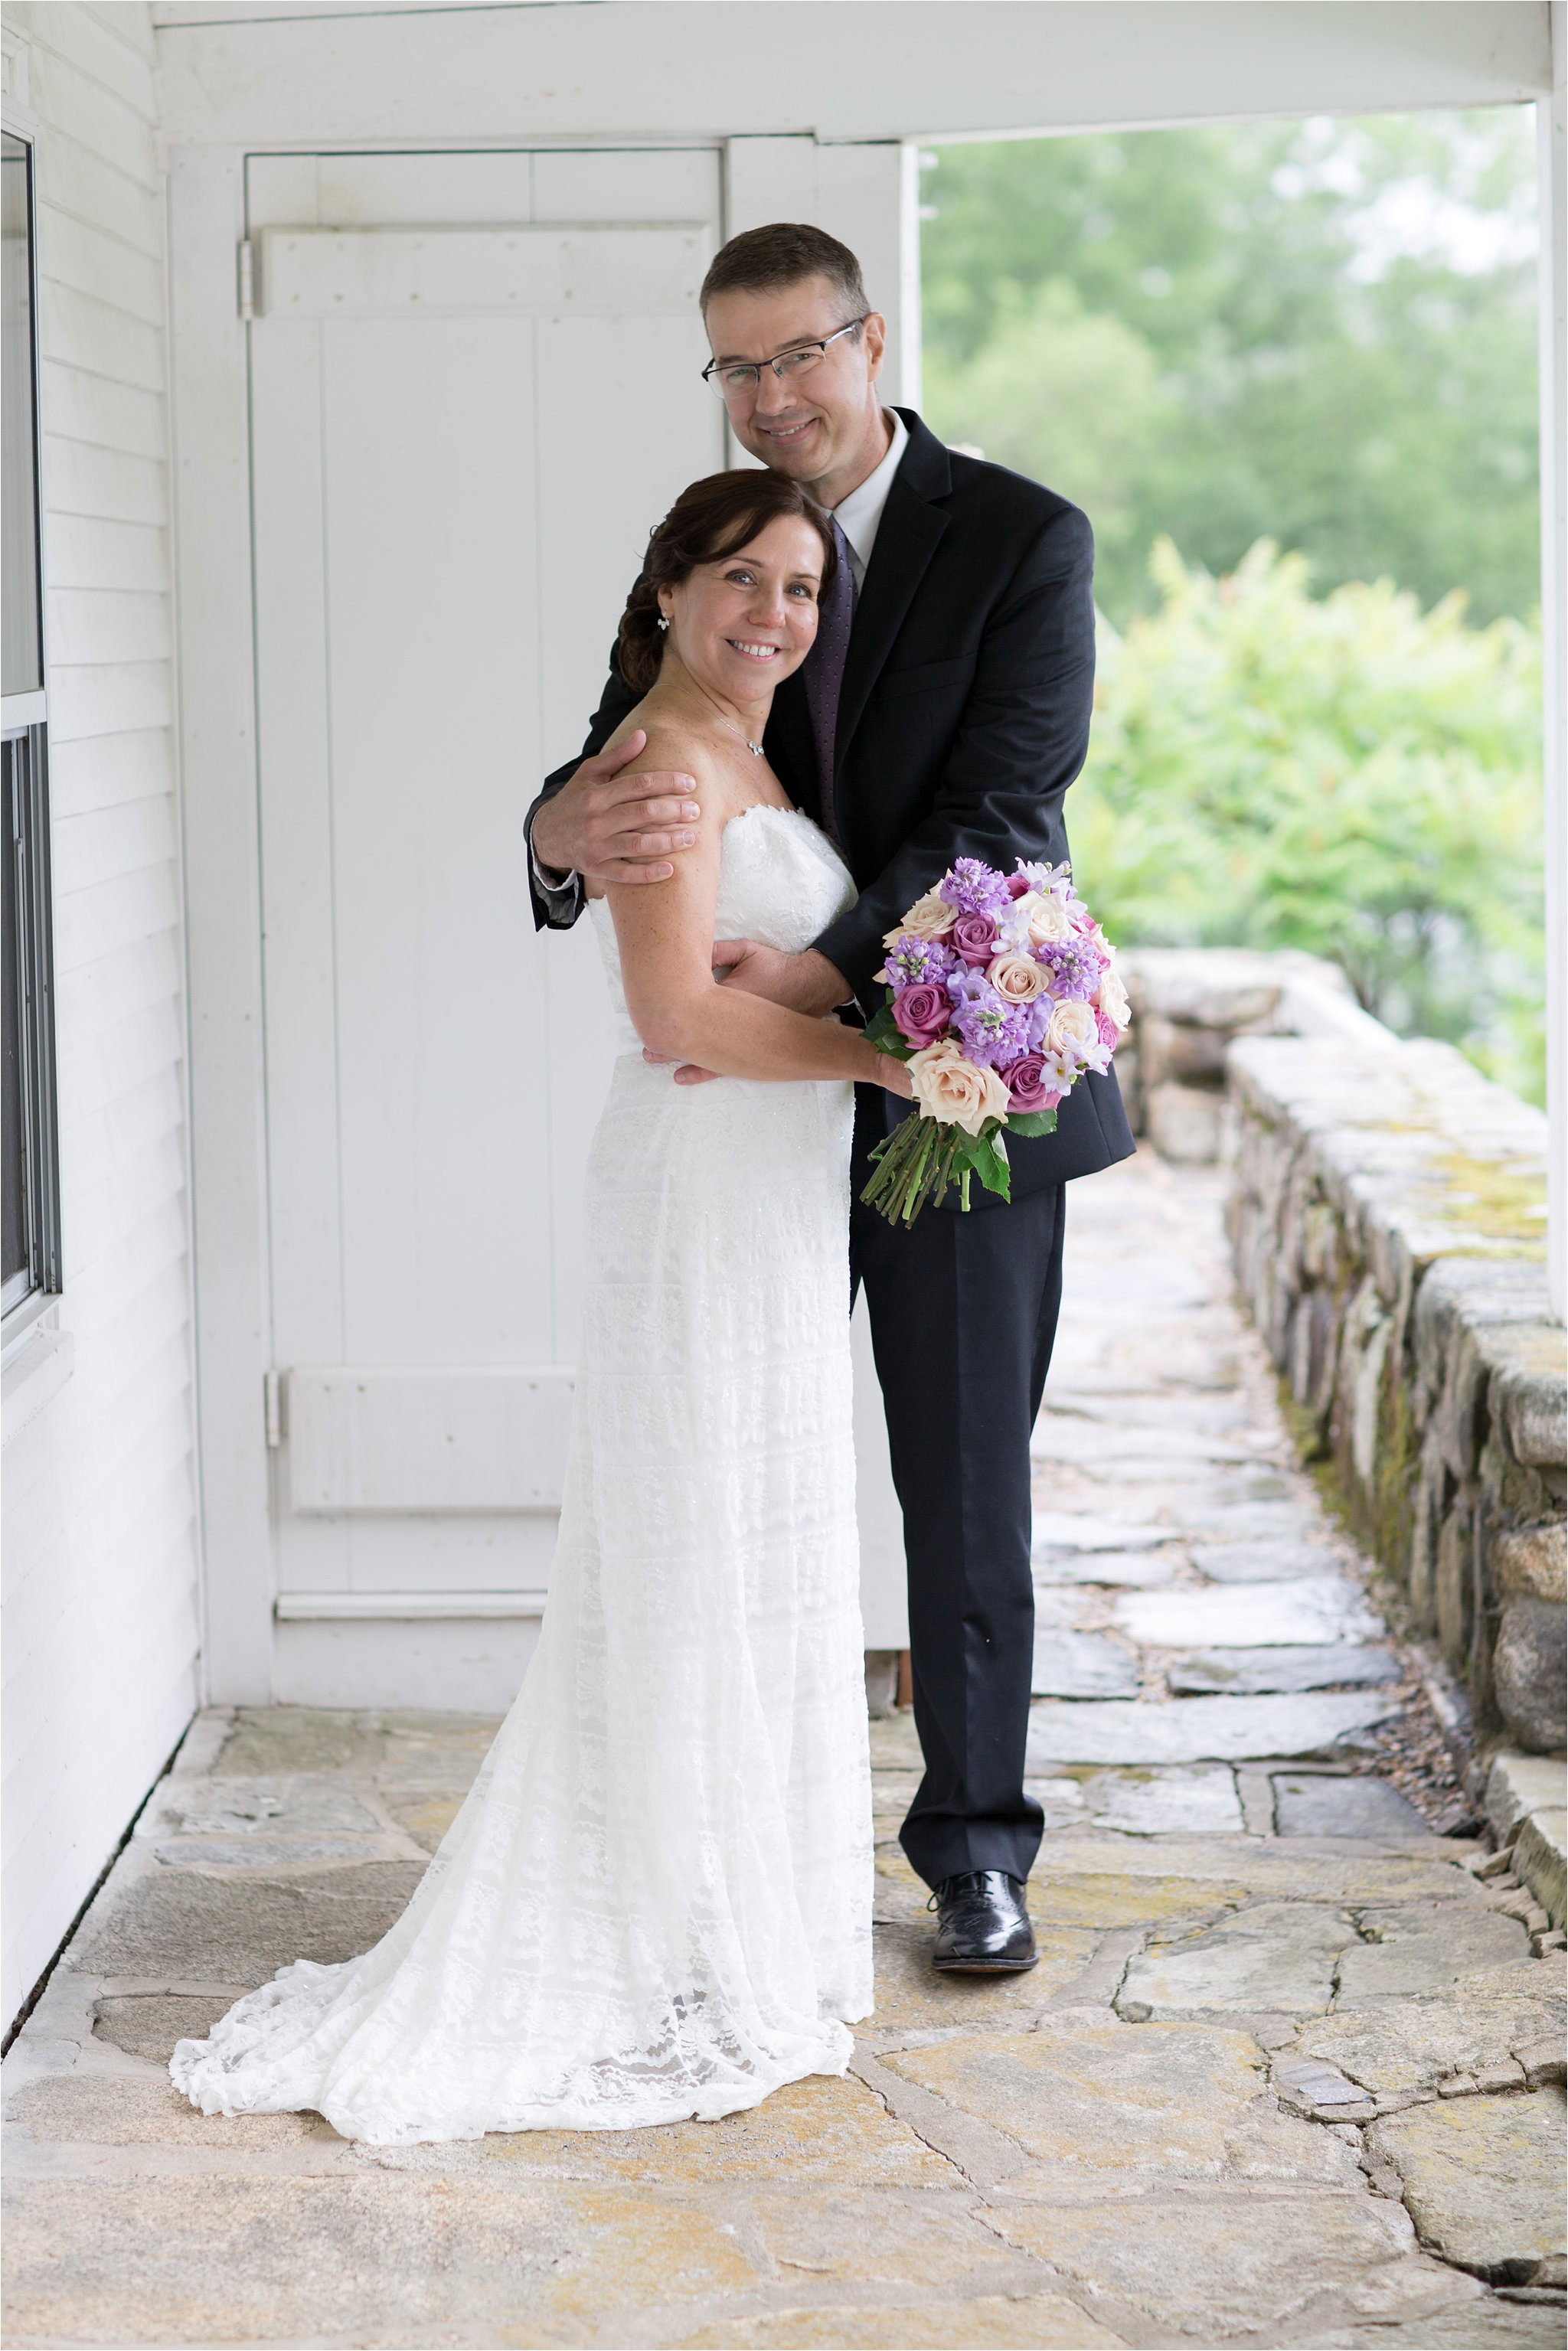 Bride and Groom on Porch (C) Maundy Mitchell